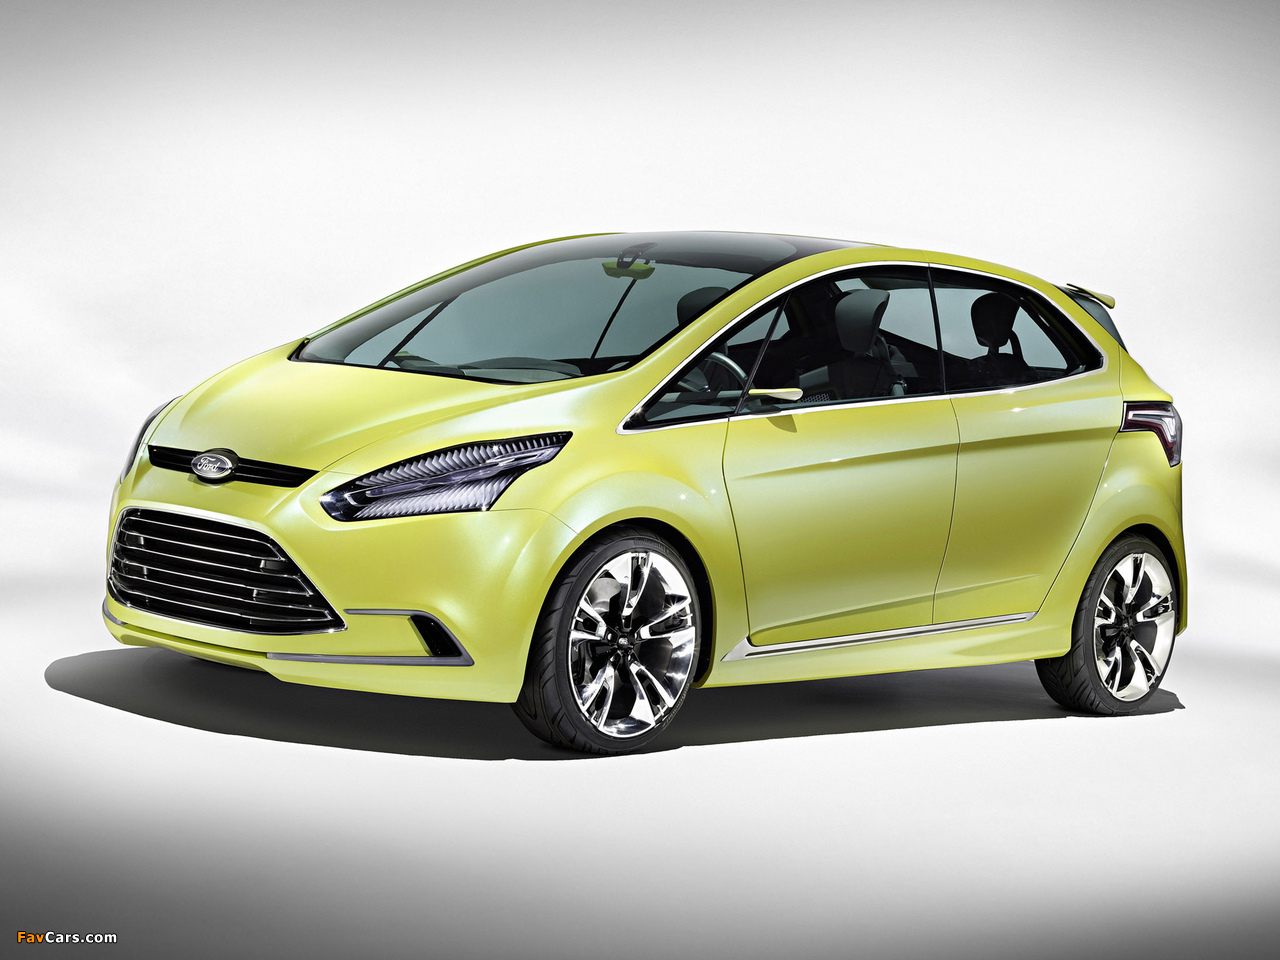 2017 Ford iosis X Concept photo - 4